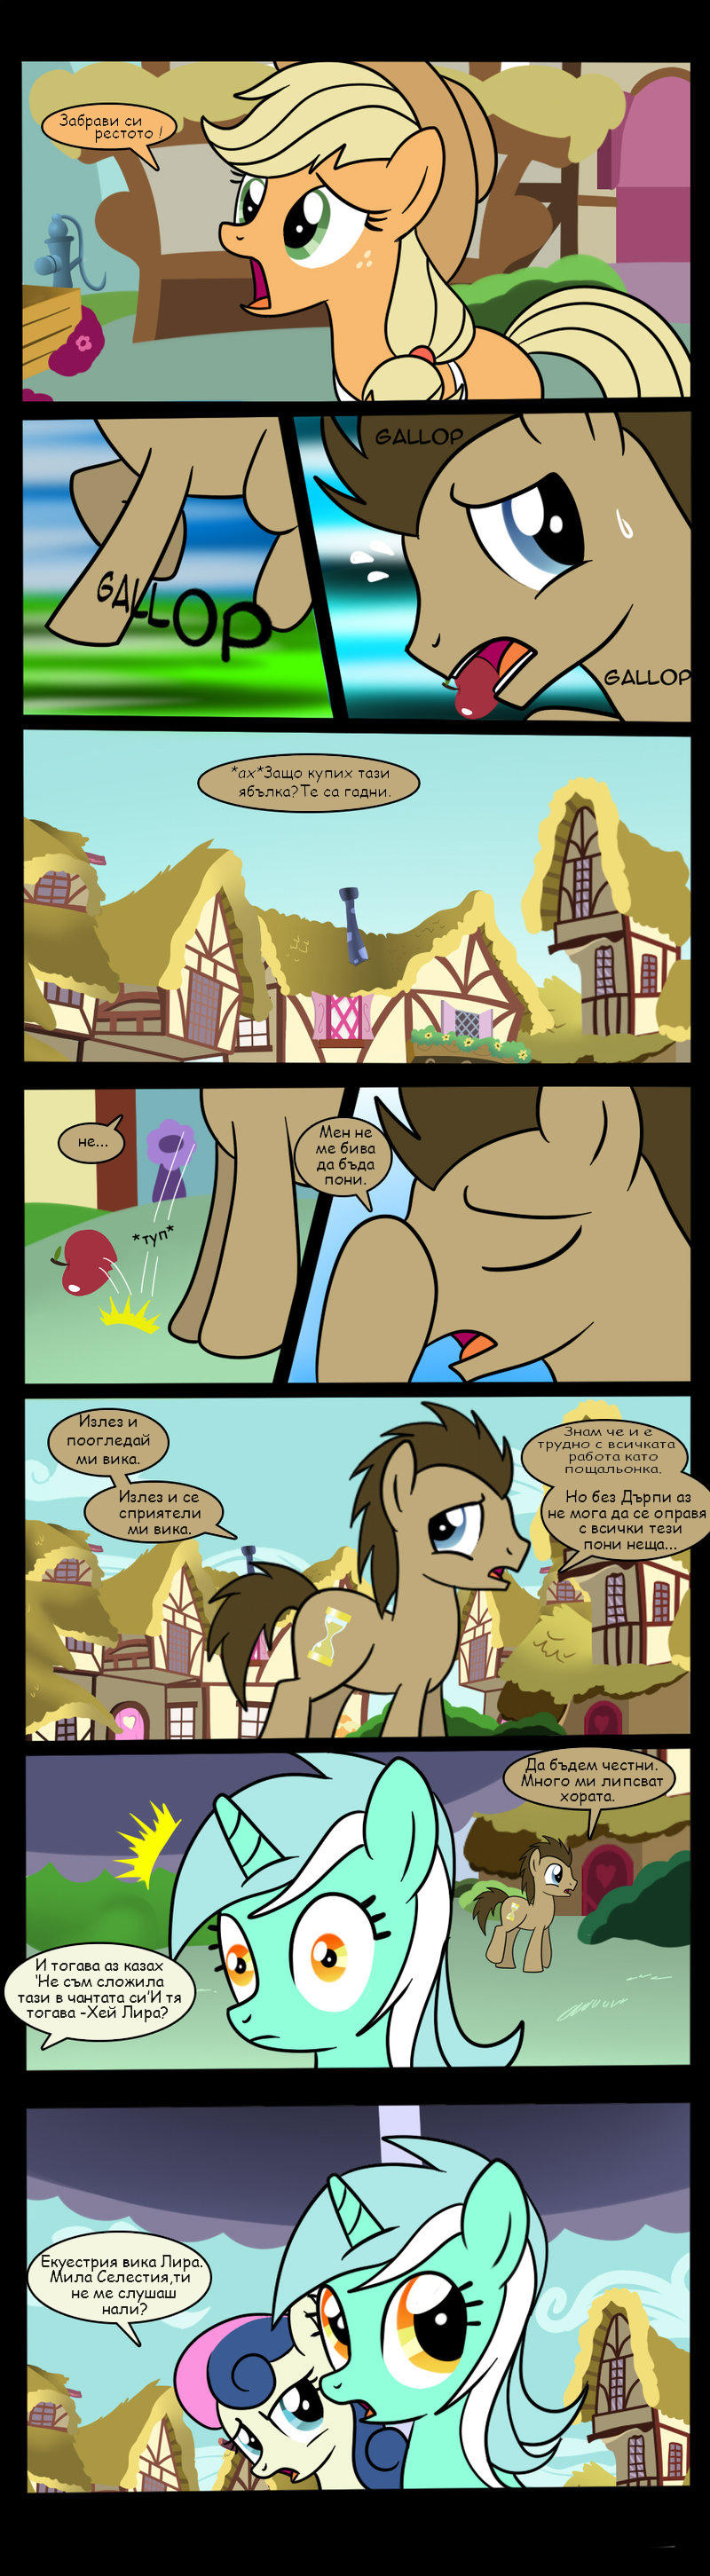 Doctor Whooves Chapter 1 Page 1 by k0k0t0